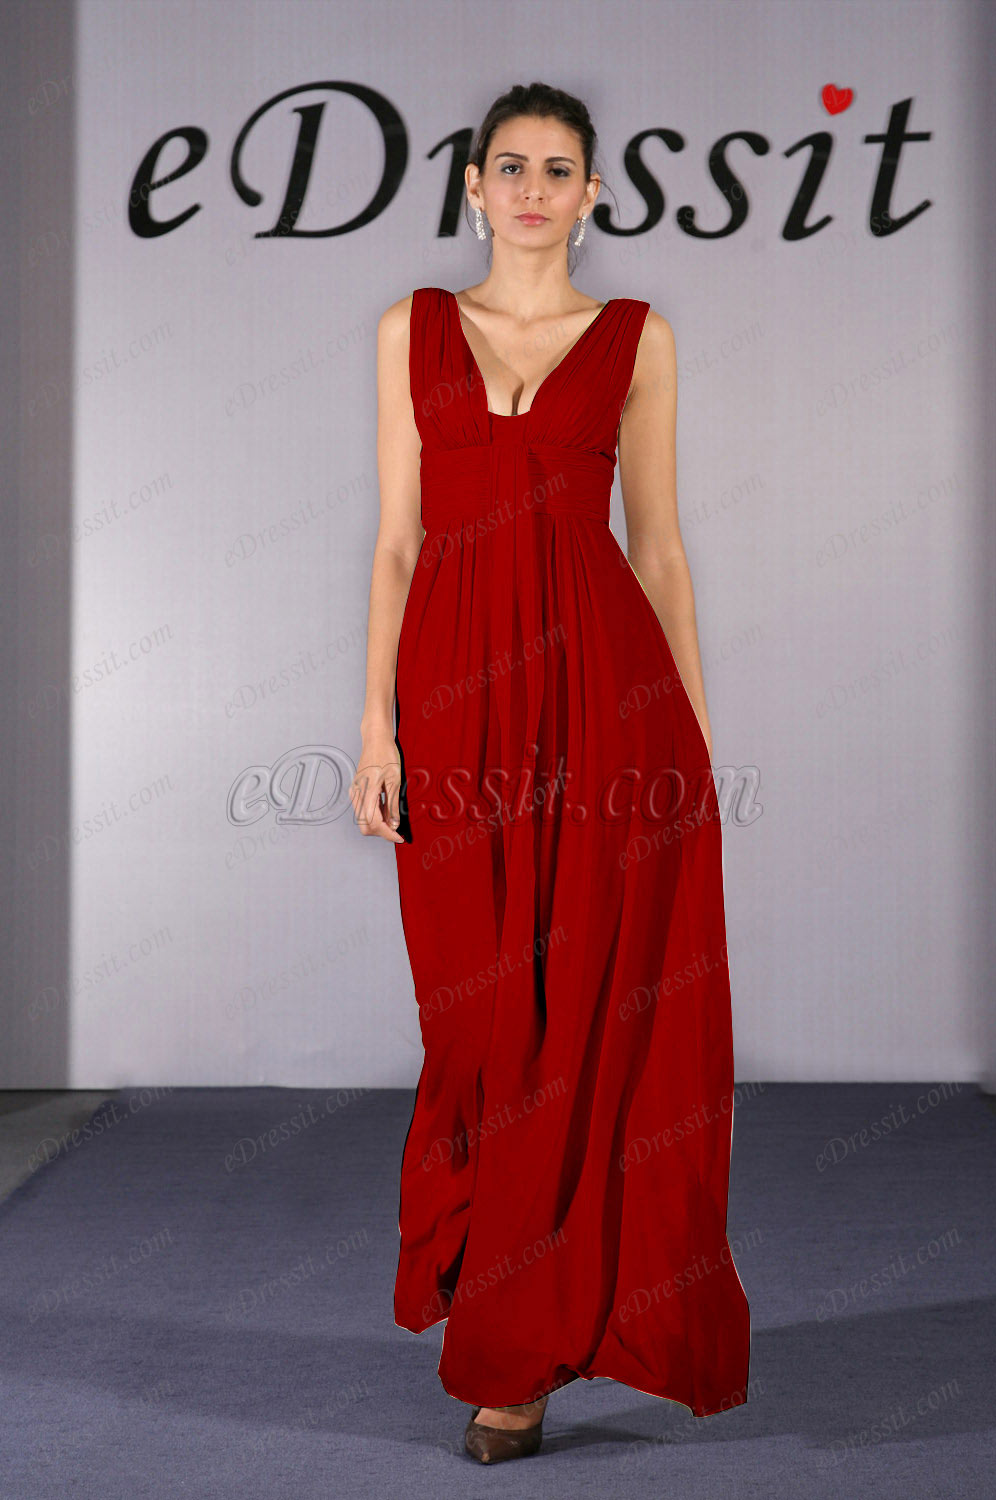 Clearance Sale ! eDressit Red Evening Dress--UK6 (00090907b)